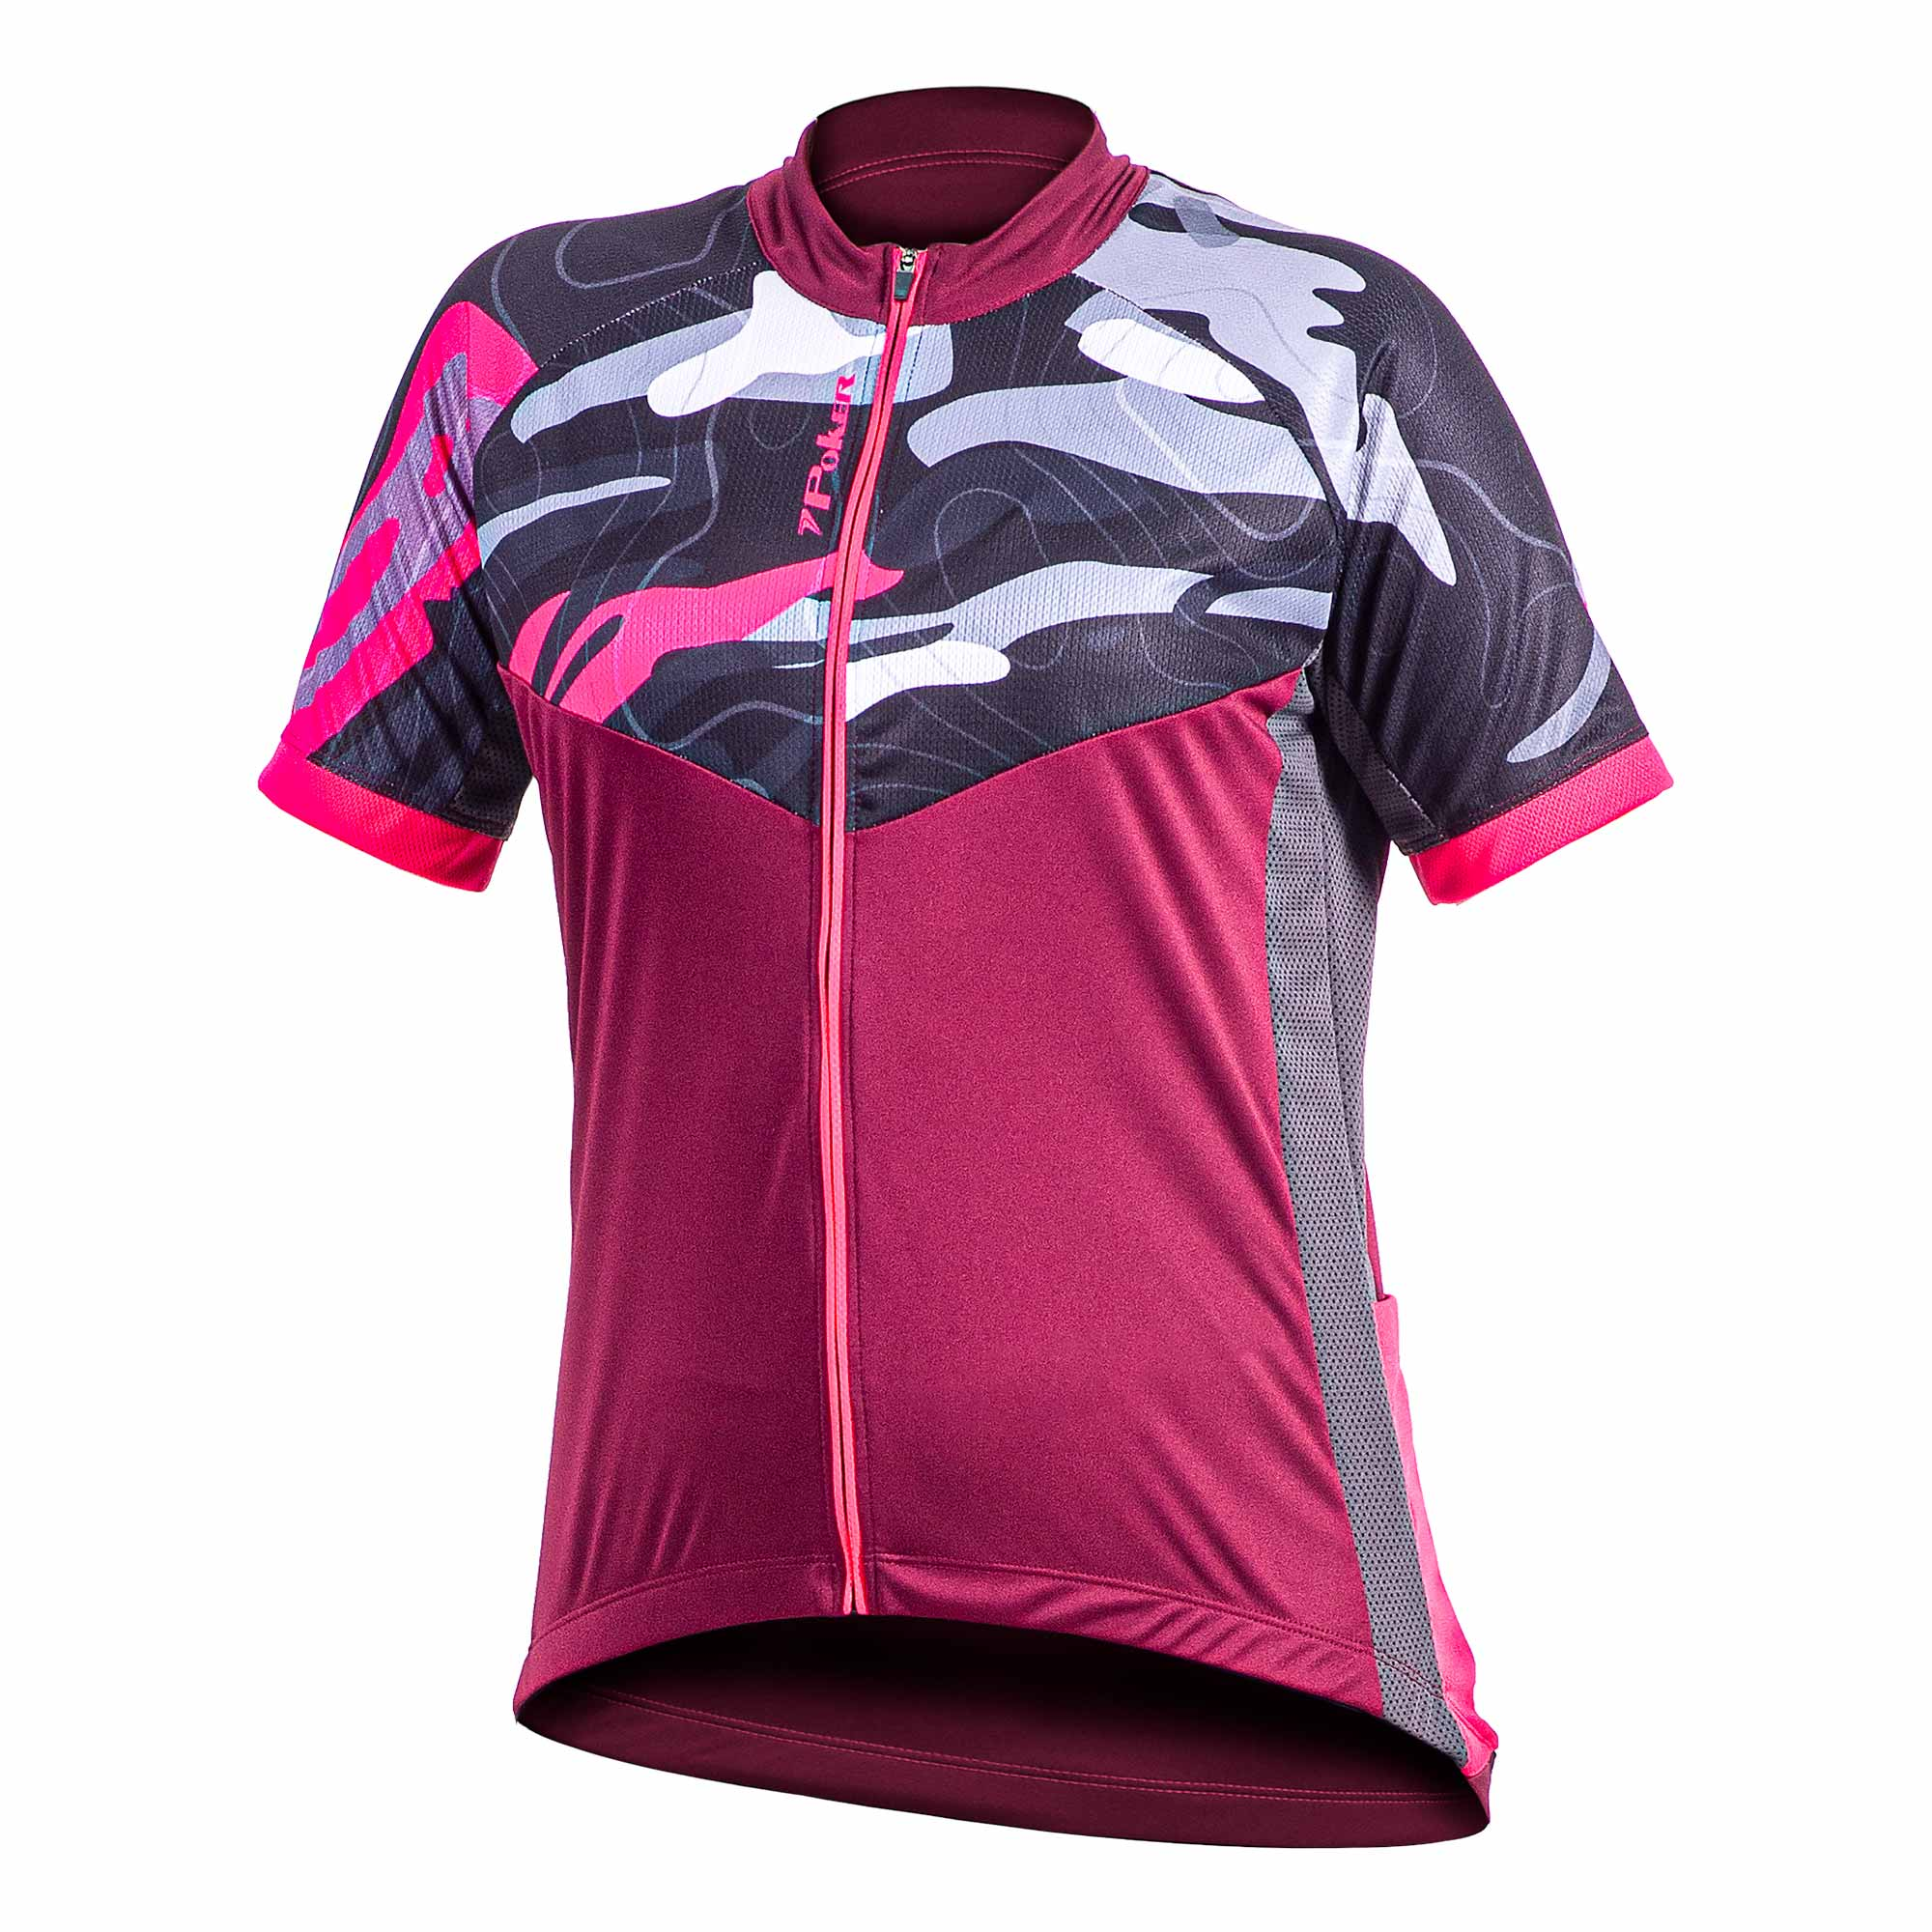 Camiseta Feminina Ciclismo Way - Poker